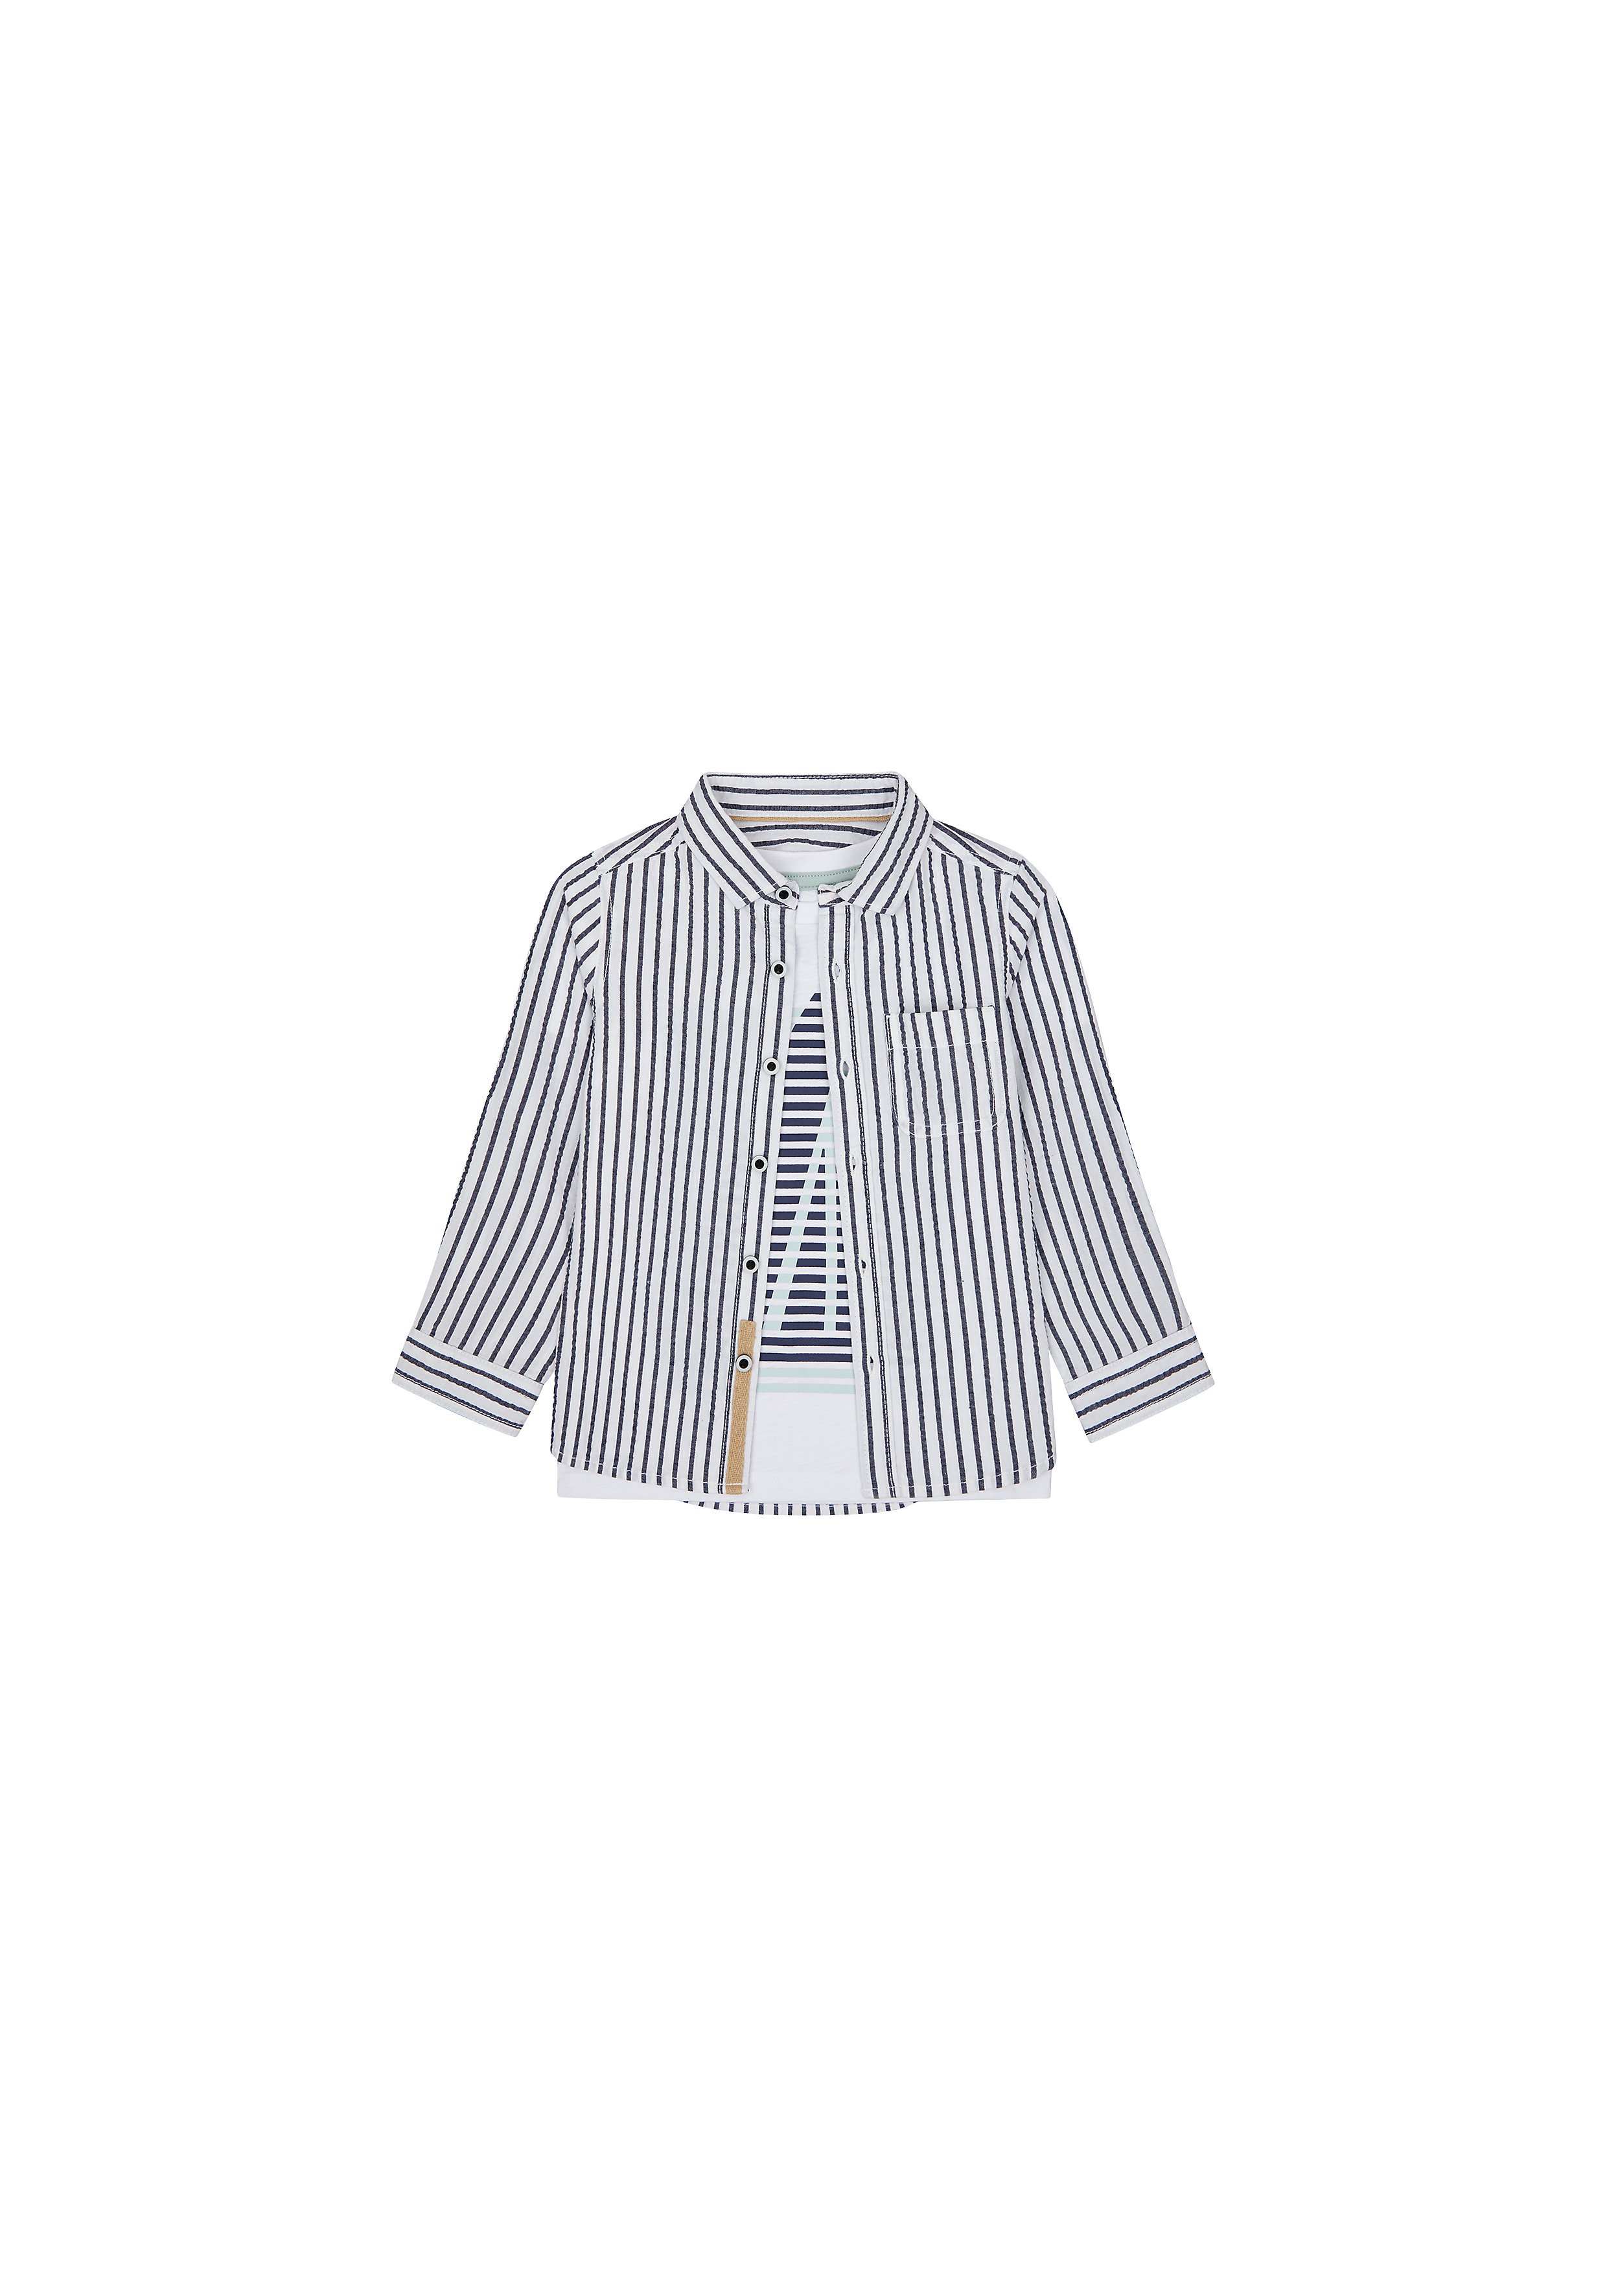 Mothercare | Boys Full Sleeves Shirt And Tee Set Striped - Navy White